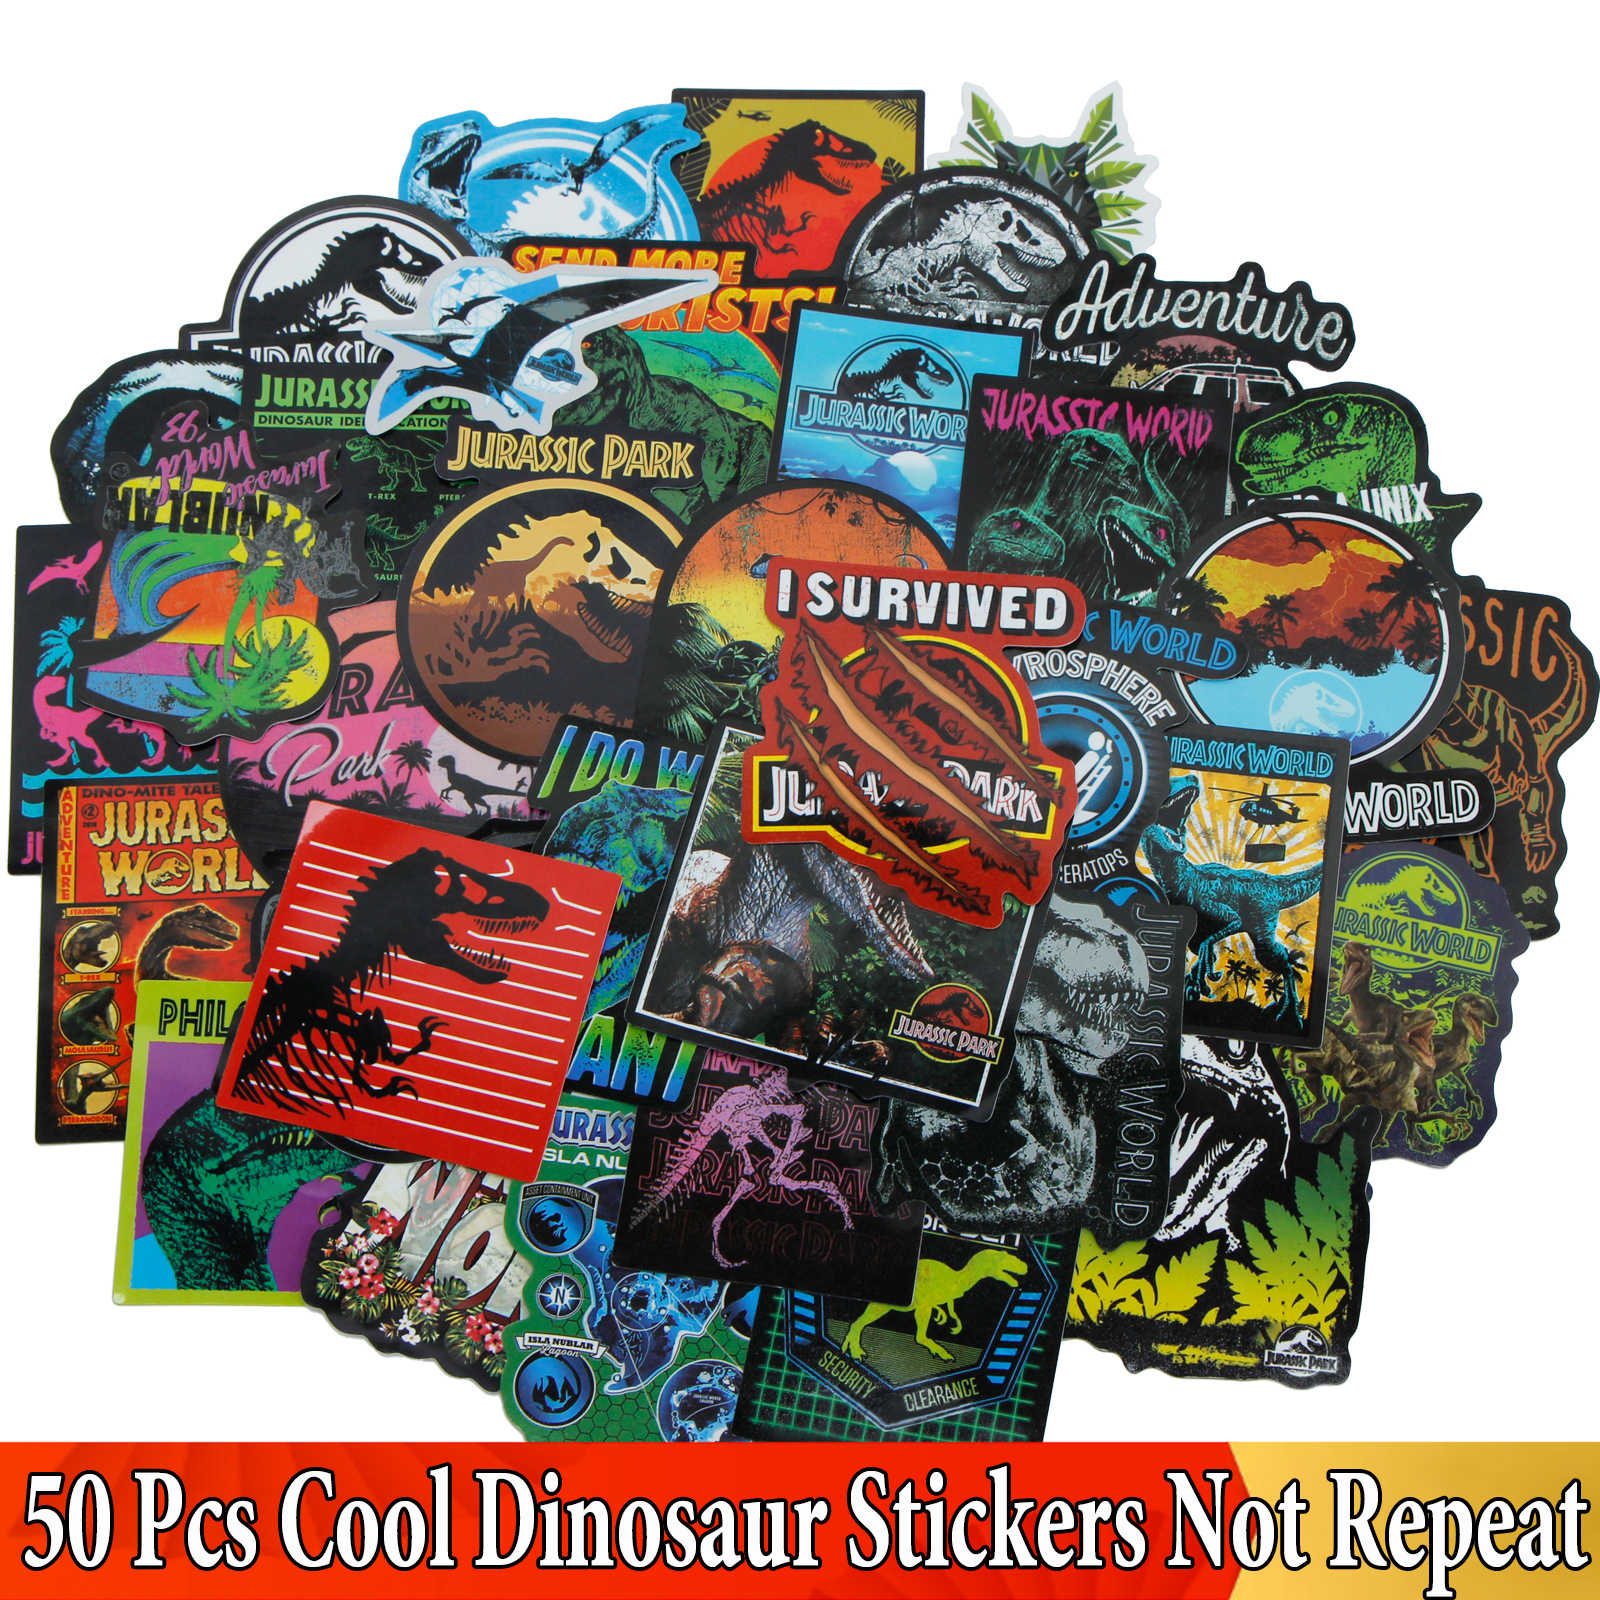 Random 50 Pcs/Lot Dinosaur JDM Sticker for Jurassic Park Graffiti Sticker for Luggage Laptop Moto Skateboard Car Kids DIY Toy